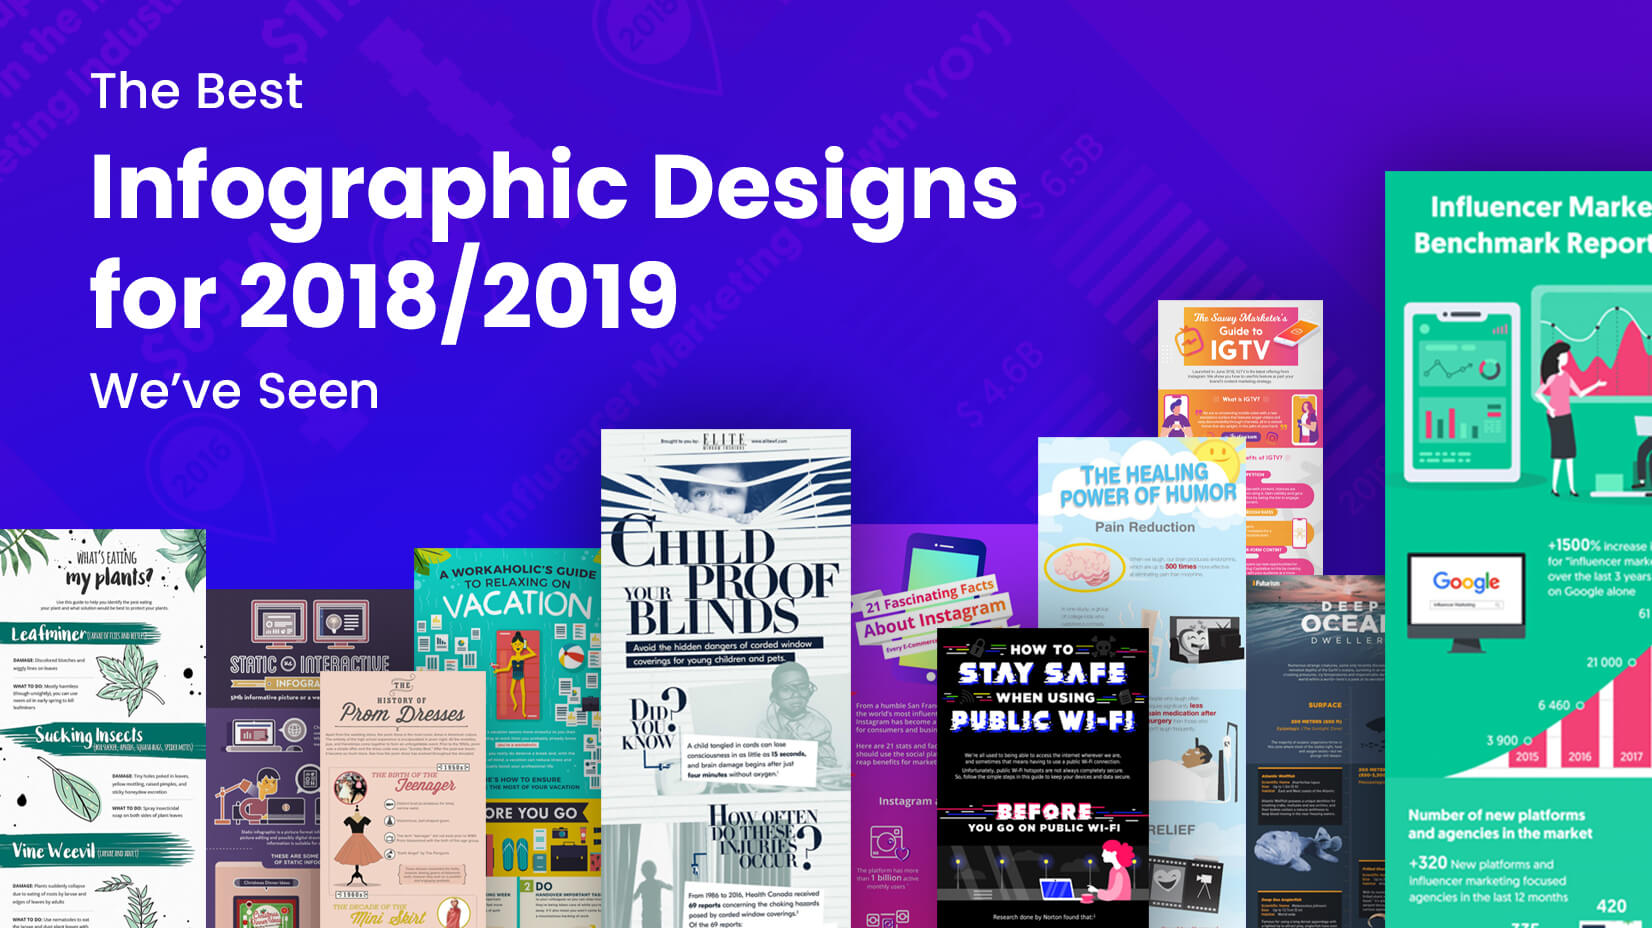 The Best Infographic Designs for 2018/2019 We've Seen